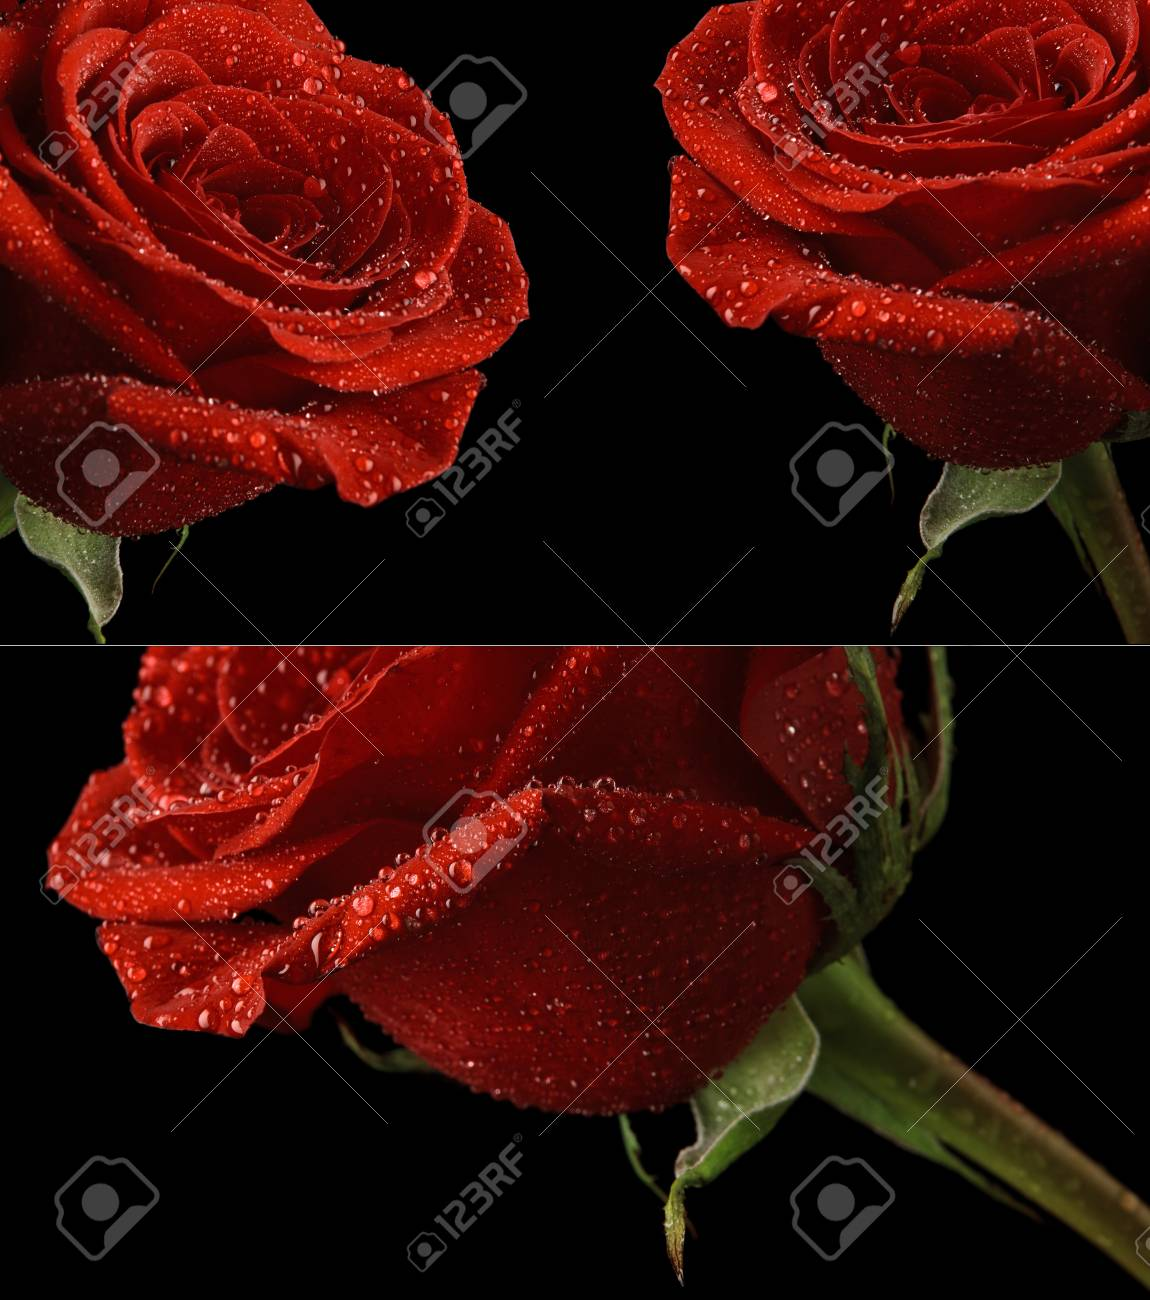 Red Rose In Dew Drops On A Black Background Stock Photo Picture And Royalty Free Image Image 18944285